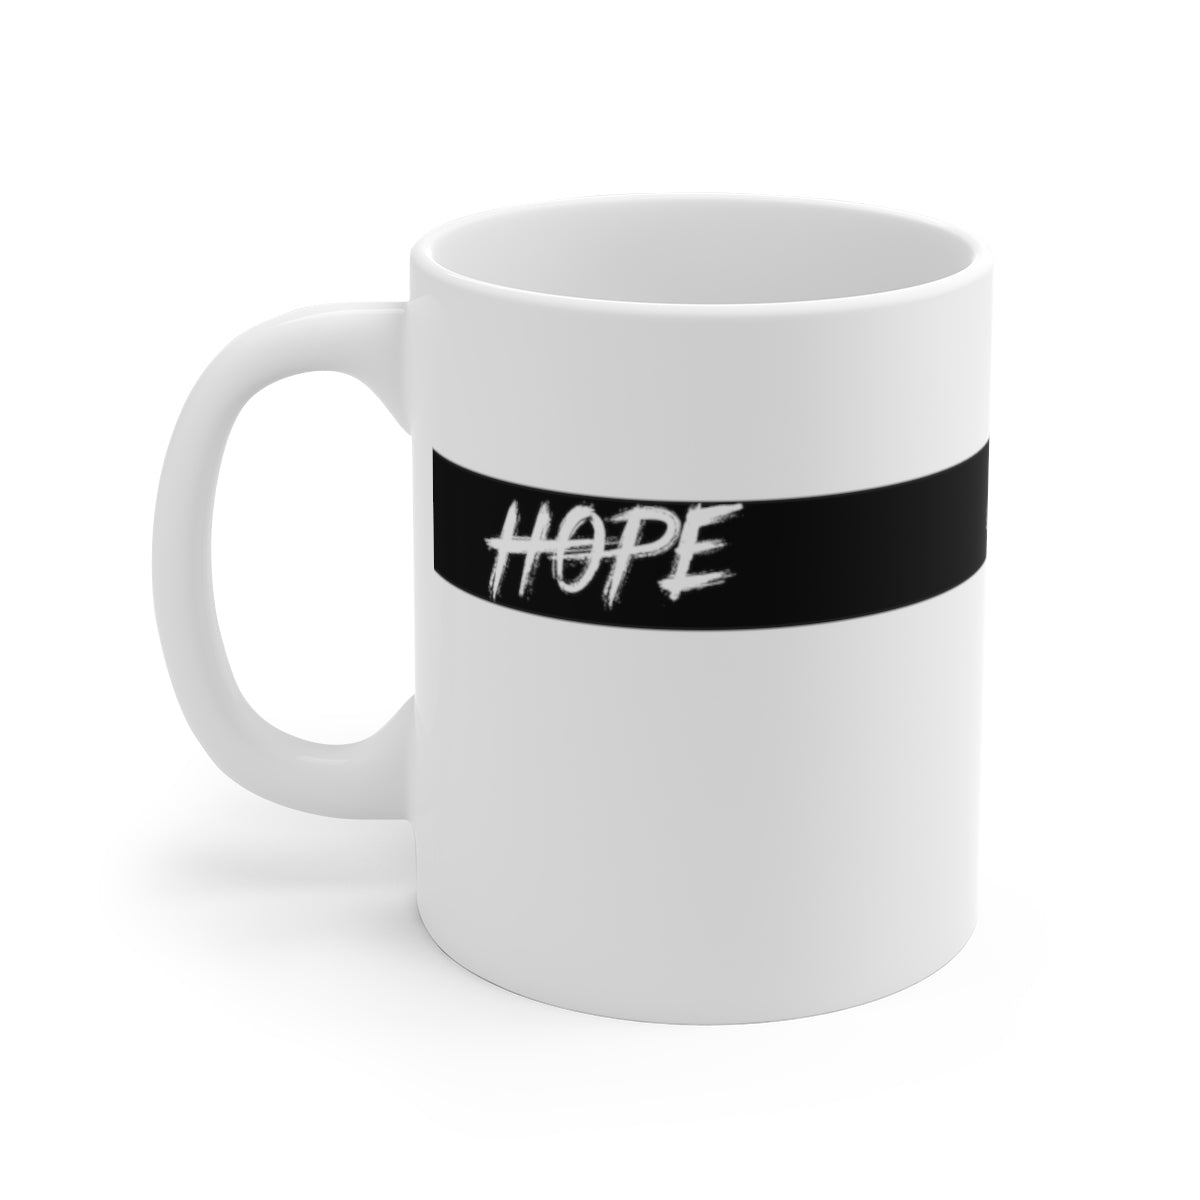 Hope White Ceramic Mug